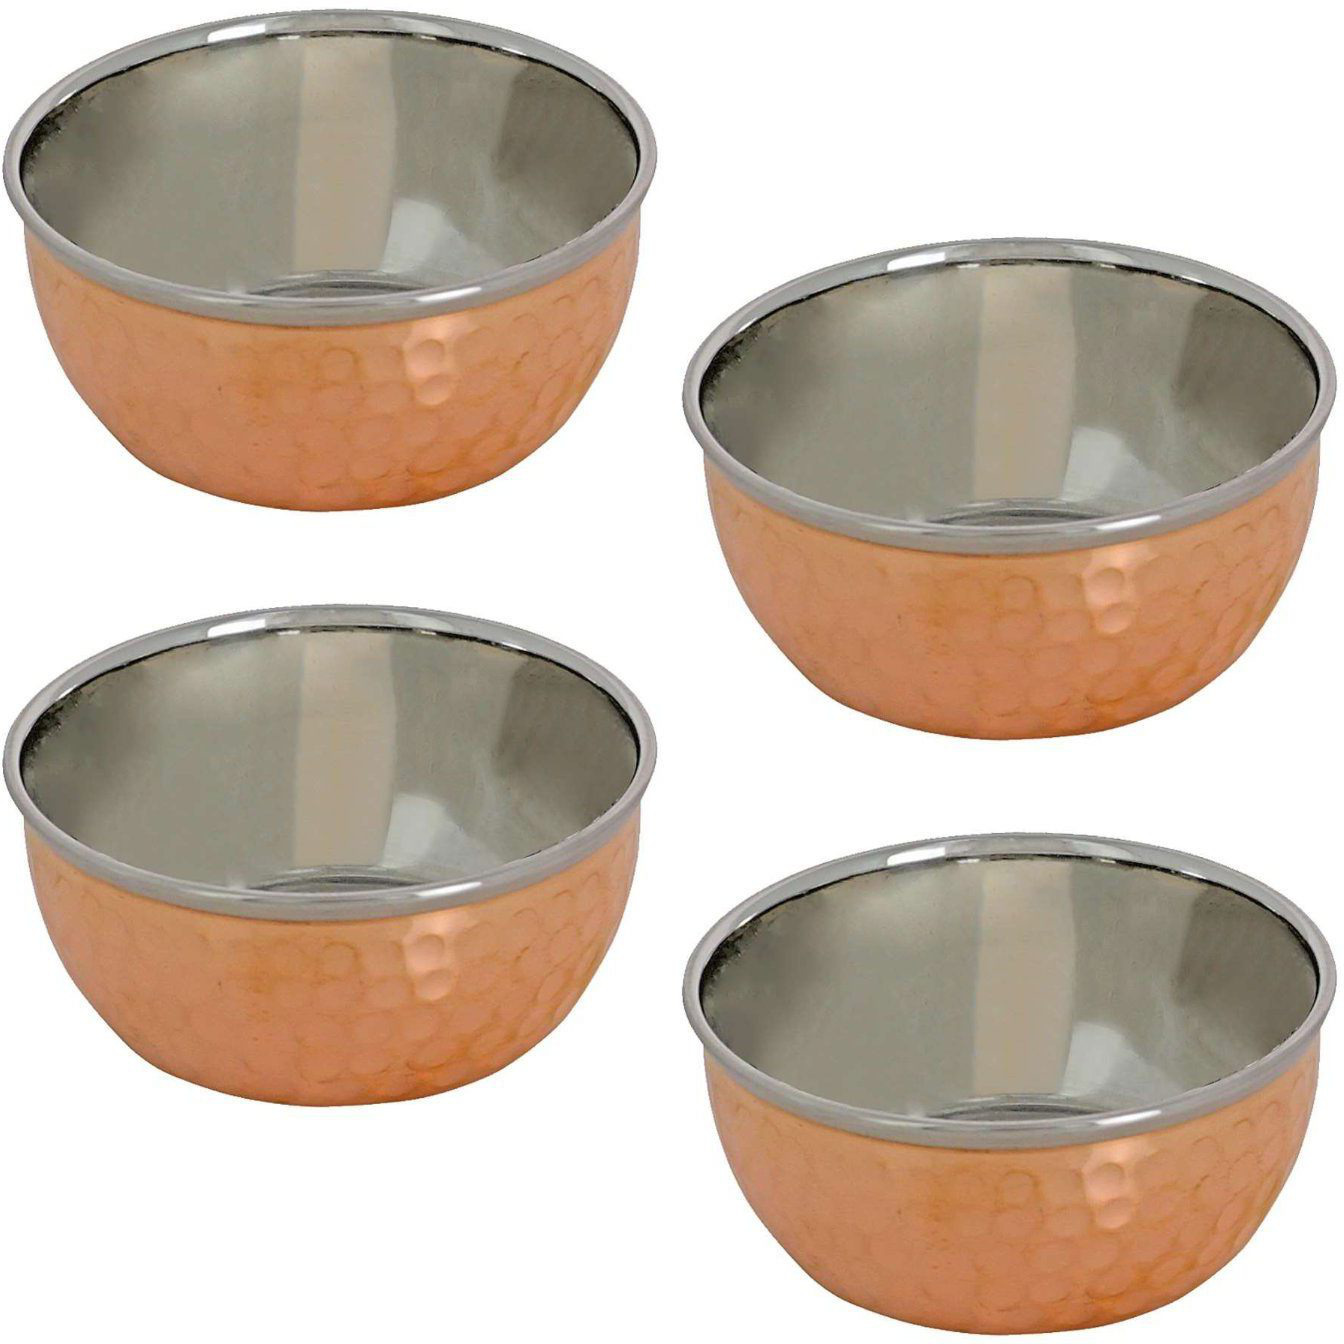 Prisha India Craft B. Set of 3 Dinnerware Traditional Stainless Steel Copper Dinner Set of Thali Plate, Bowls, Glass and Spoons, Dia 13  With 1 Embossed Stainless Steel Copper Pitcher Jug - Christmas Gift